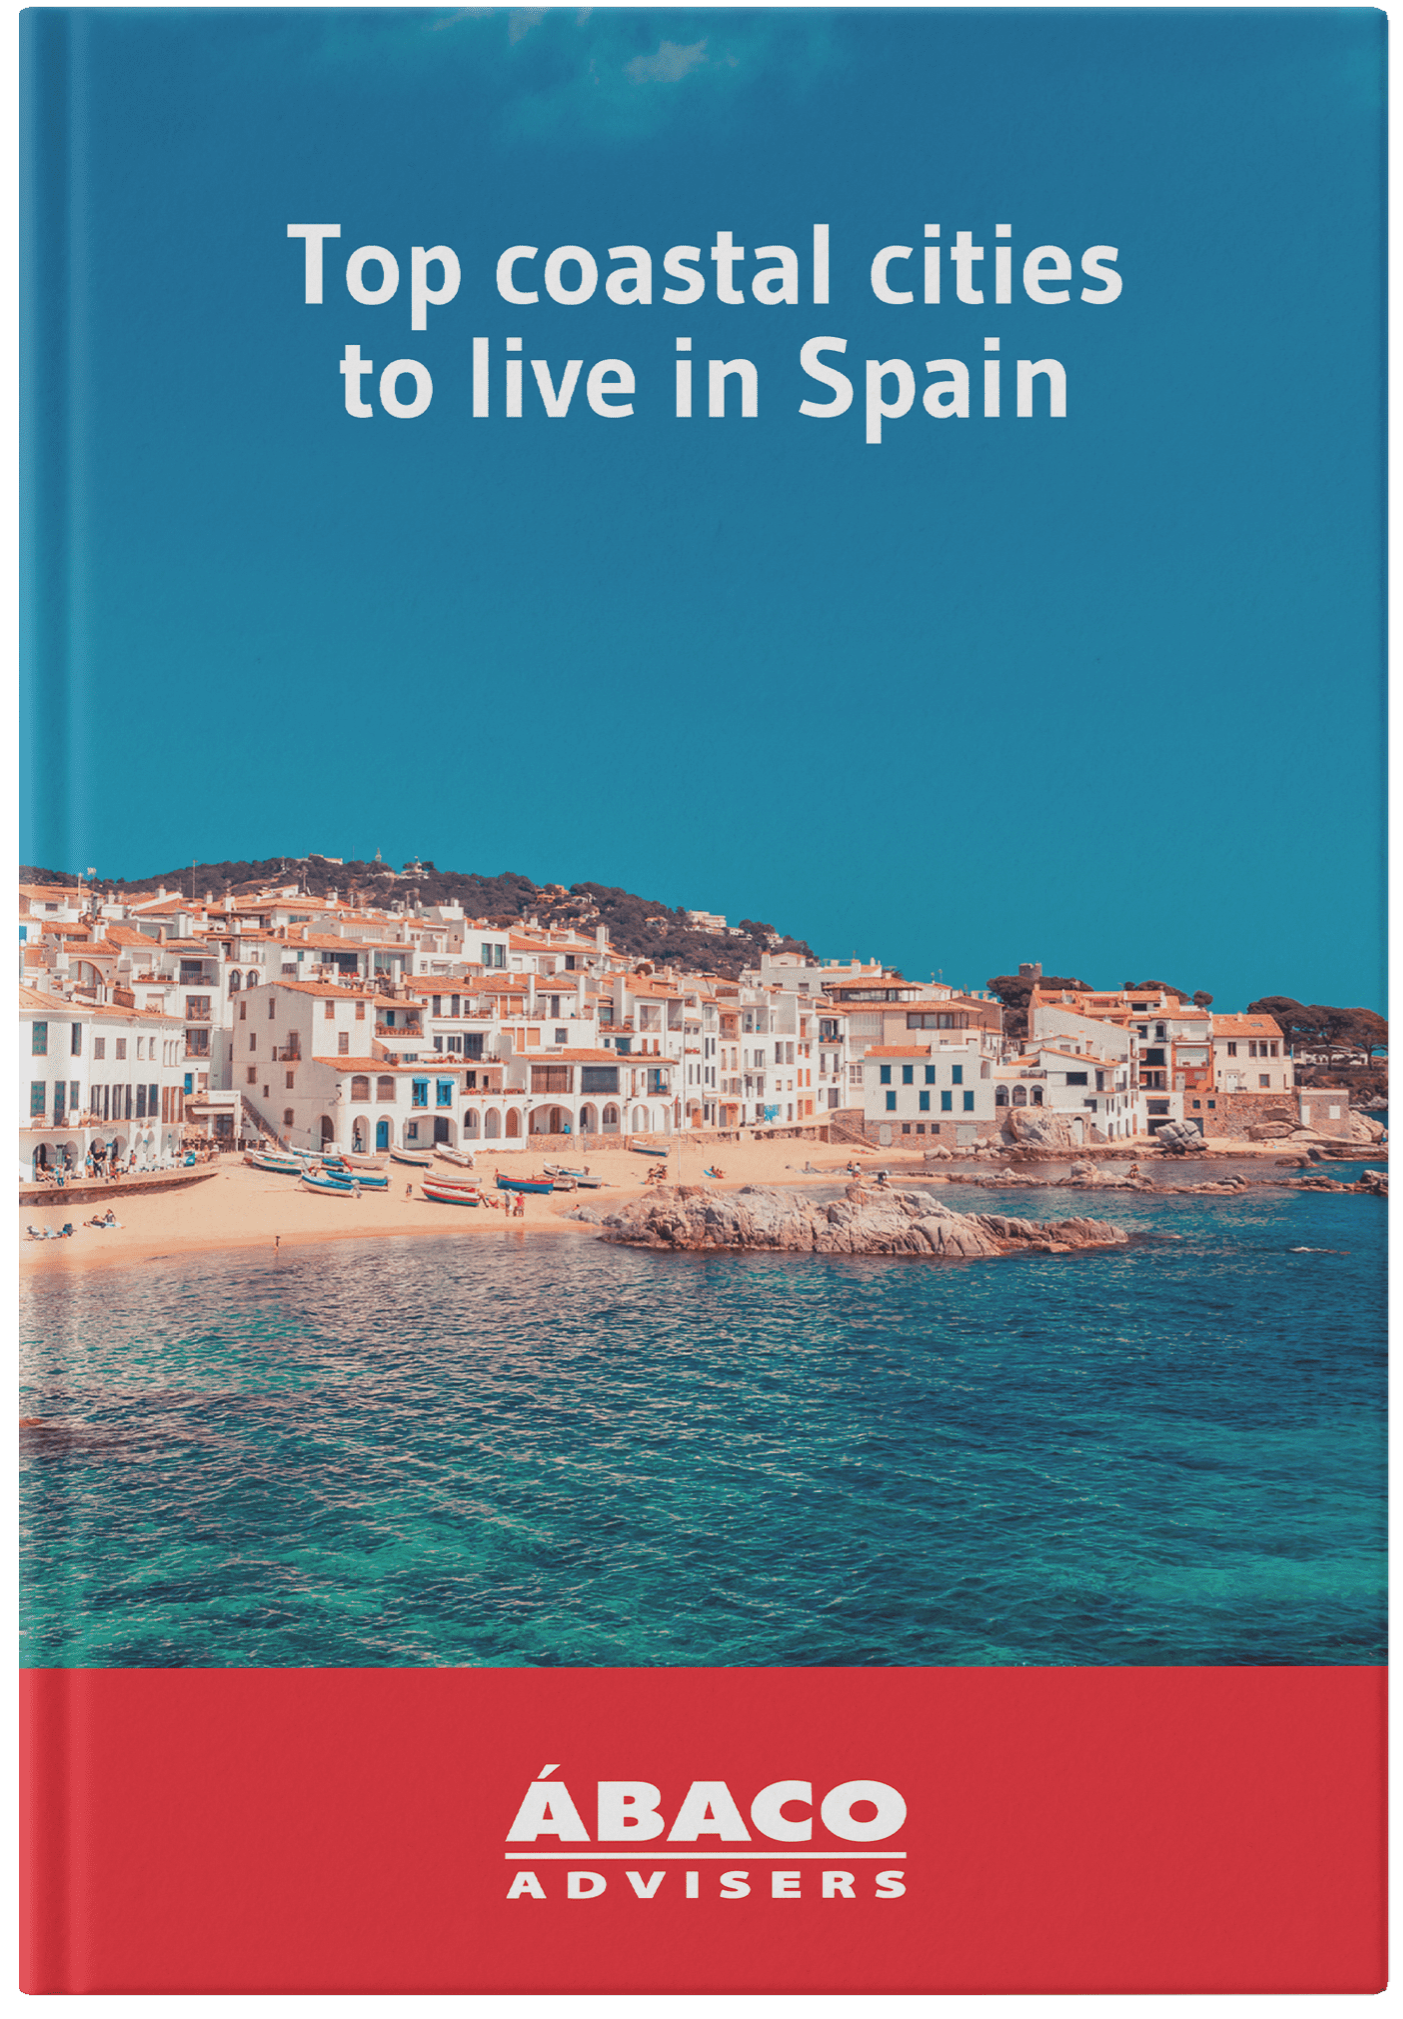 ABC - Top coastal cities to live in Spain - Portada comprimido - Edited